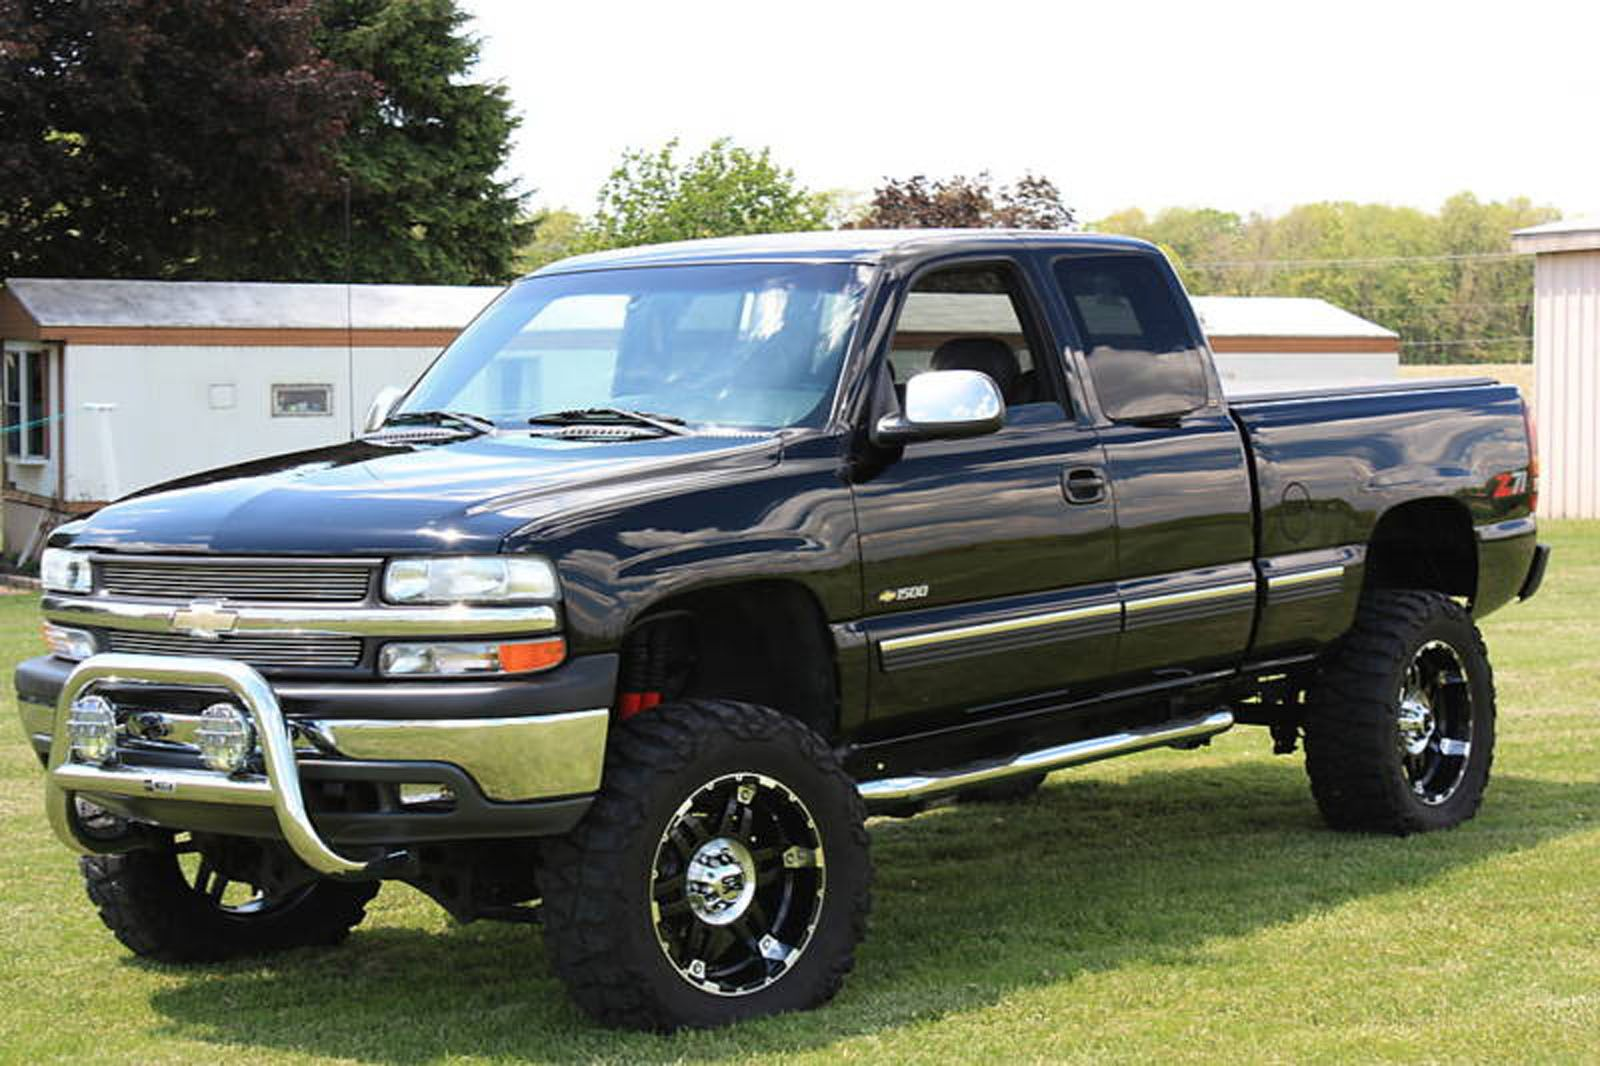 2014 Chevy Silverado Lifted Black With Nice Rims Even Lifted